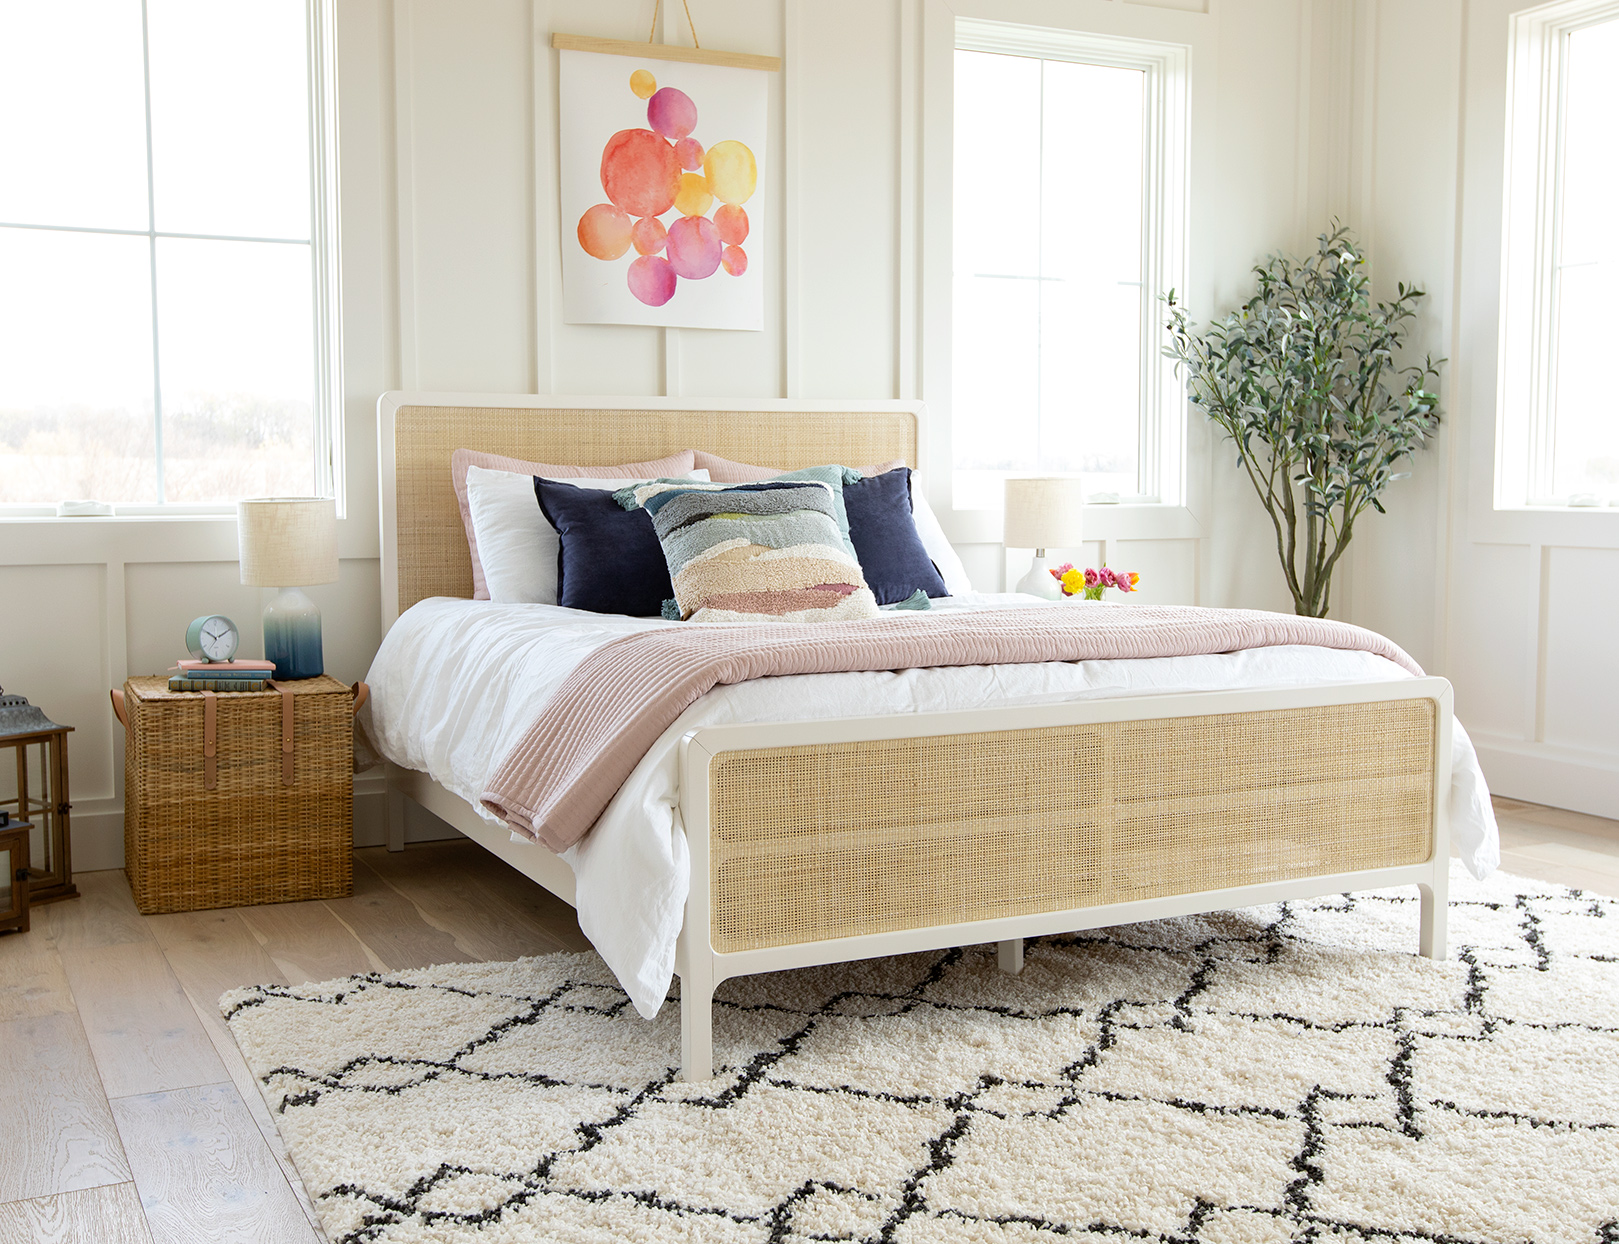 bright bedroom rattan bed blue pink pillows artwork plant rug